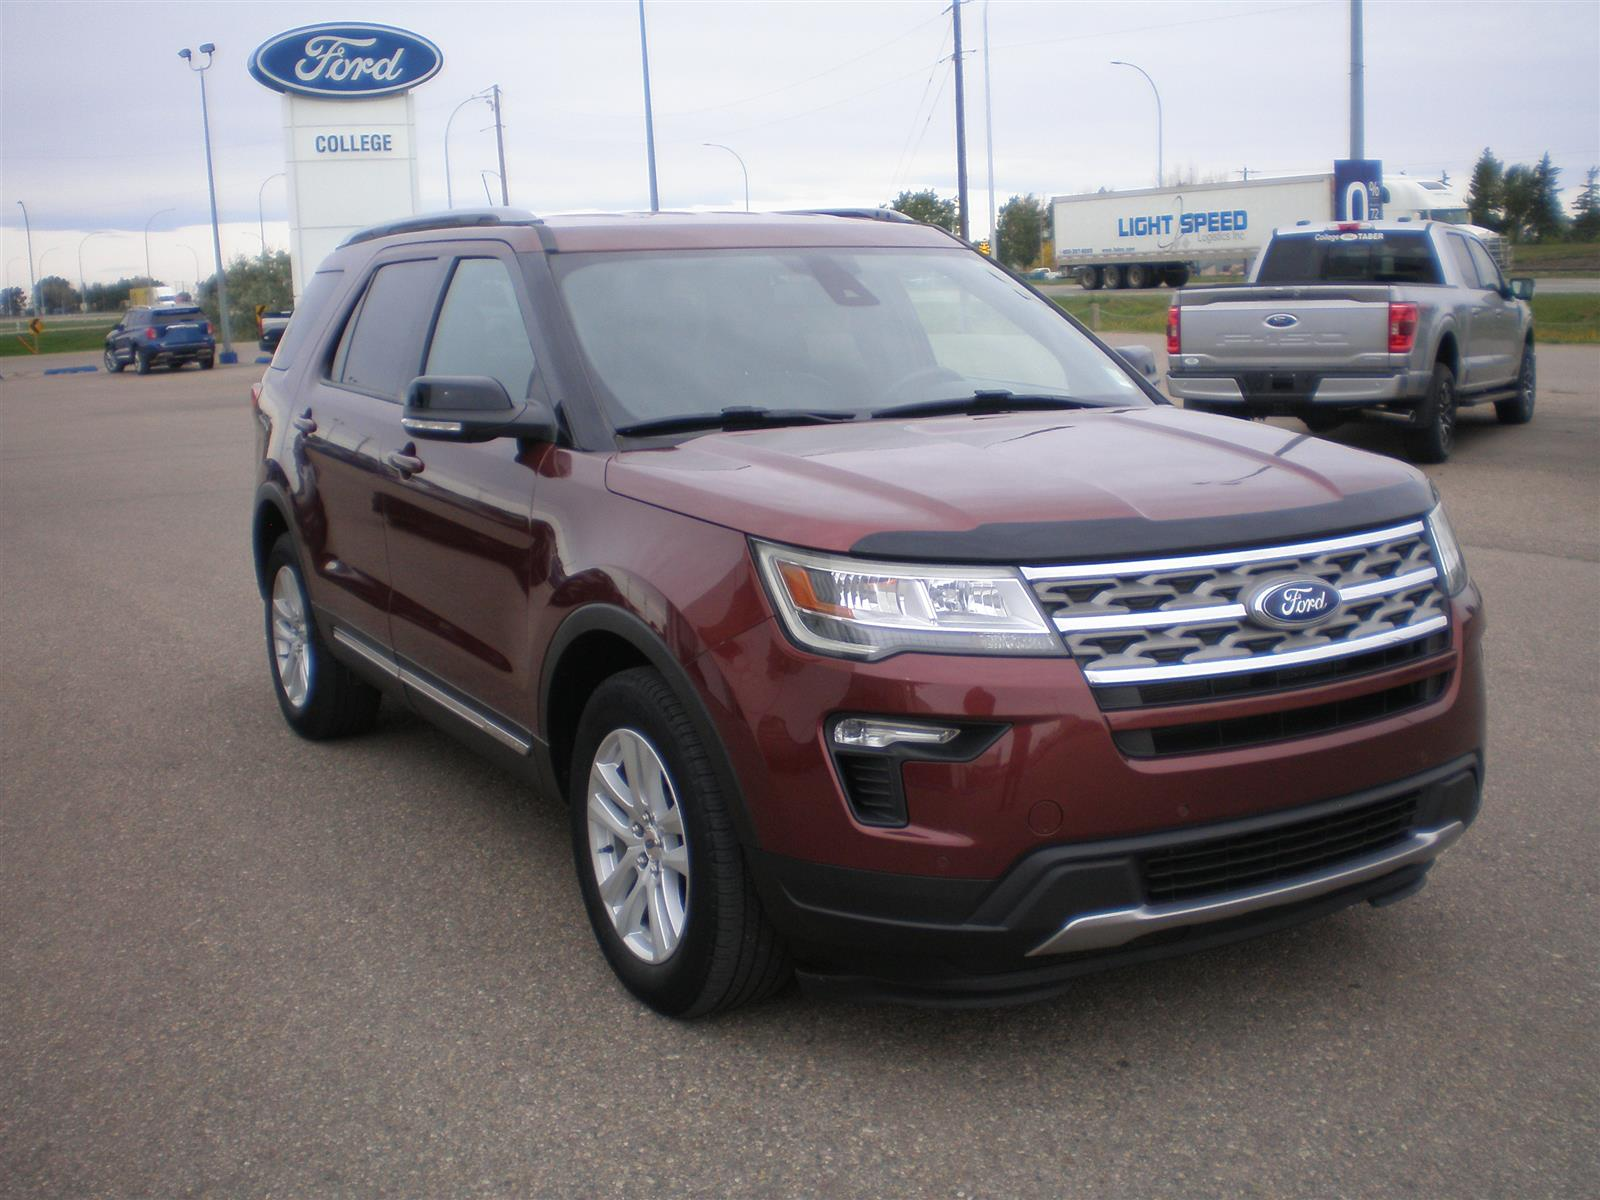 2018 Ford Explorer , XLT , 4WD, Leather Seats